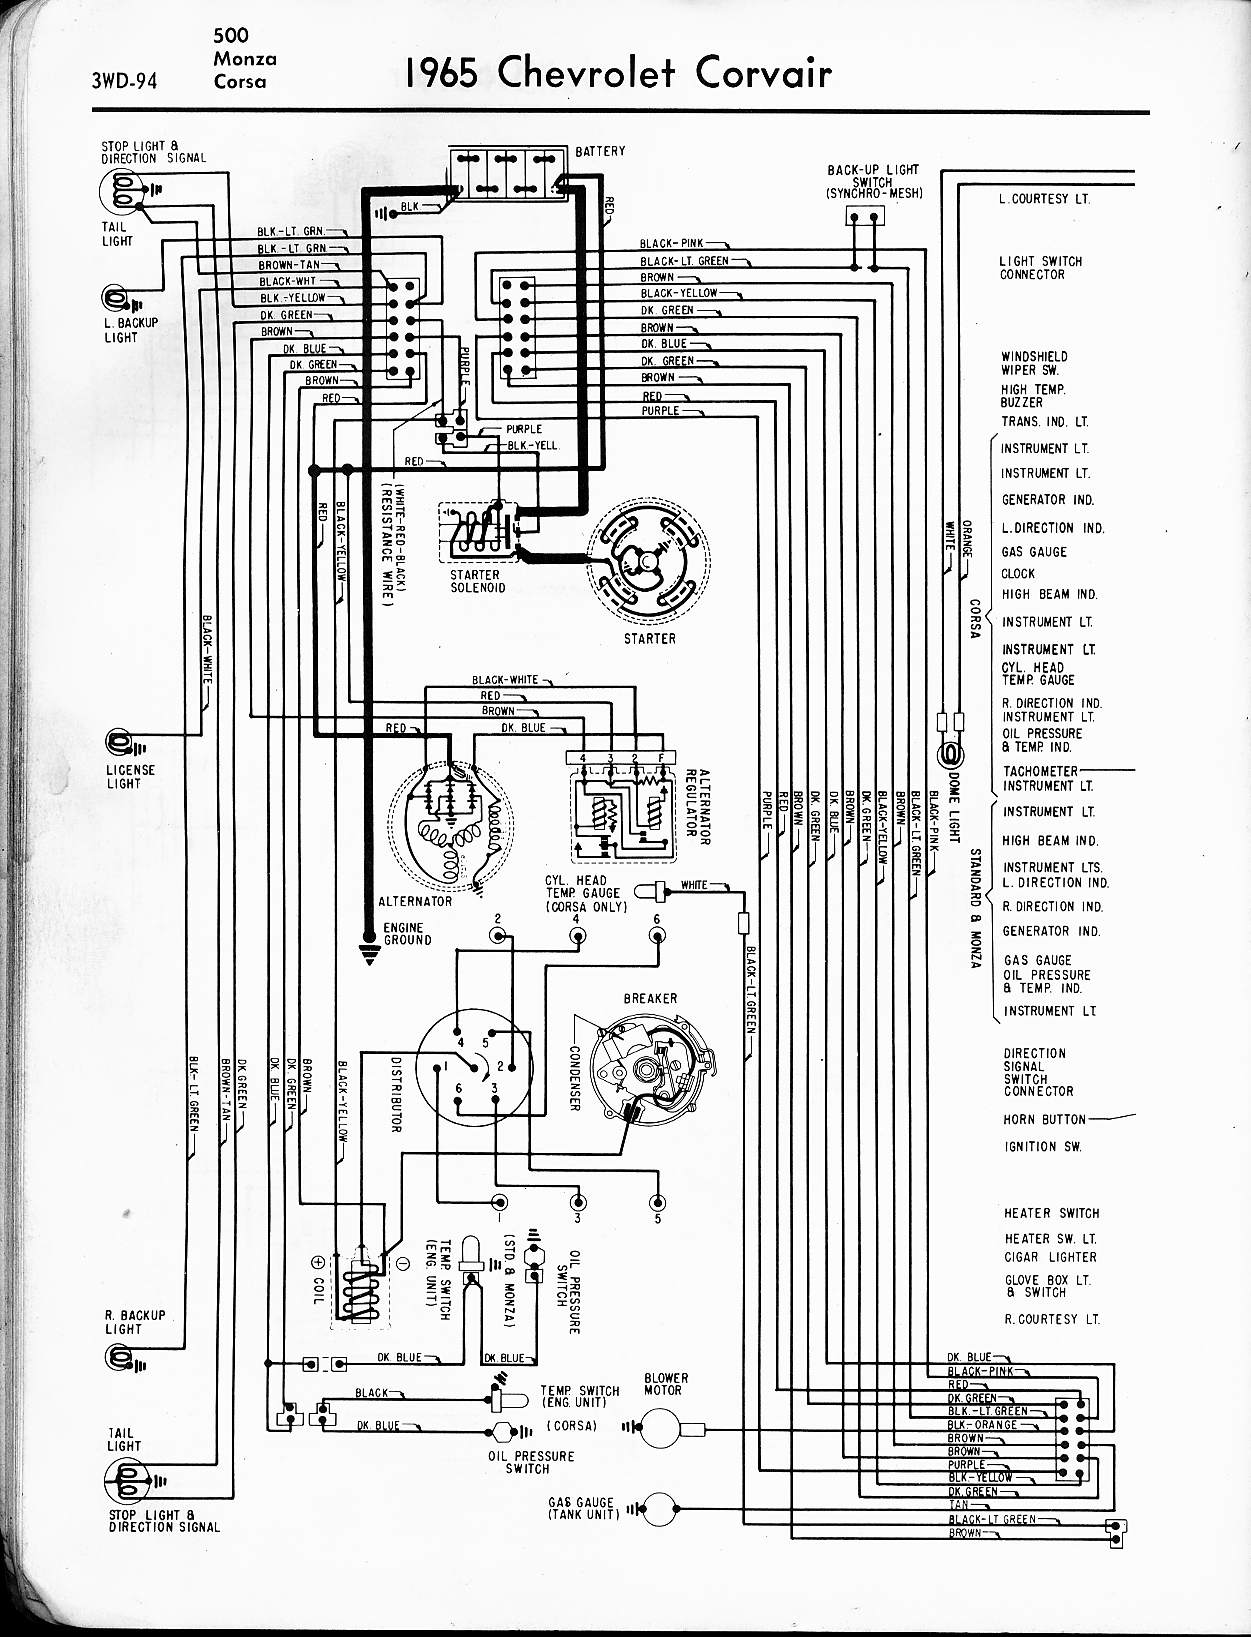 Chevrolet Parts Online Diagrams